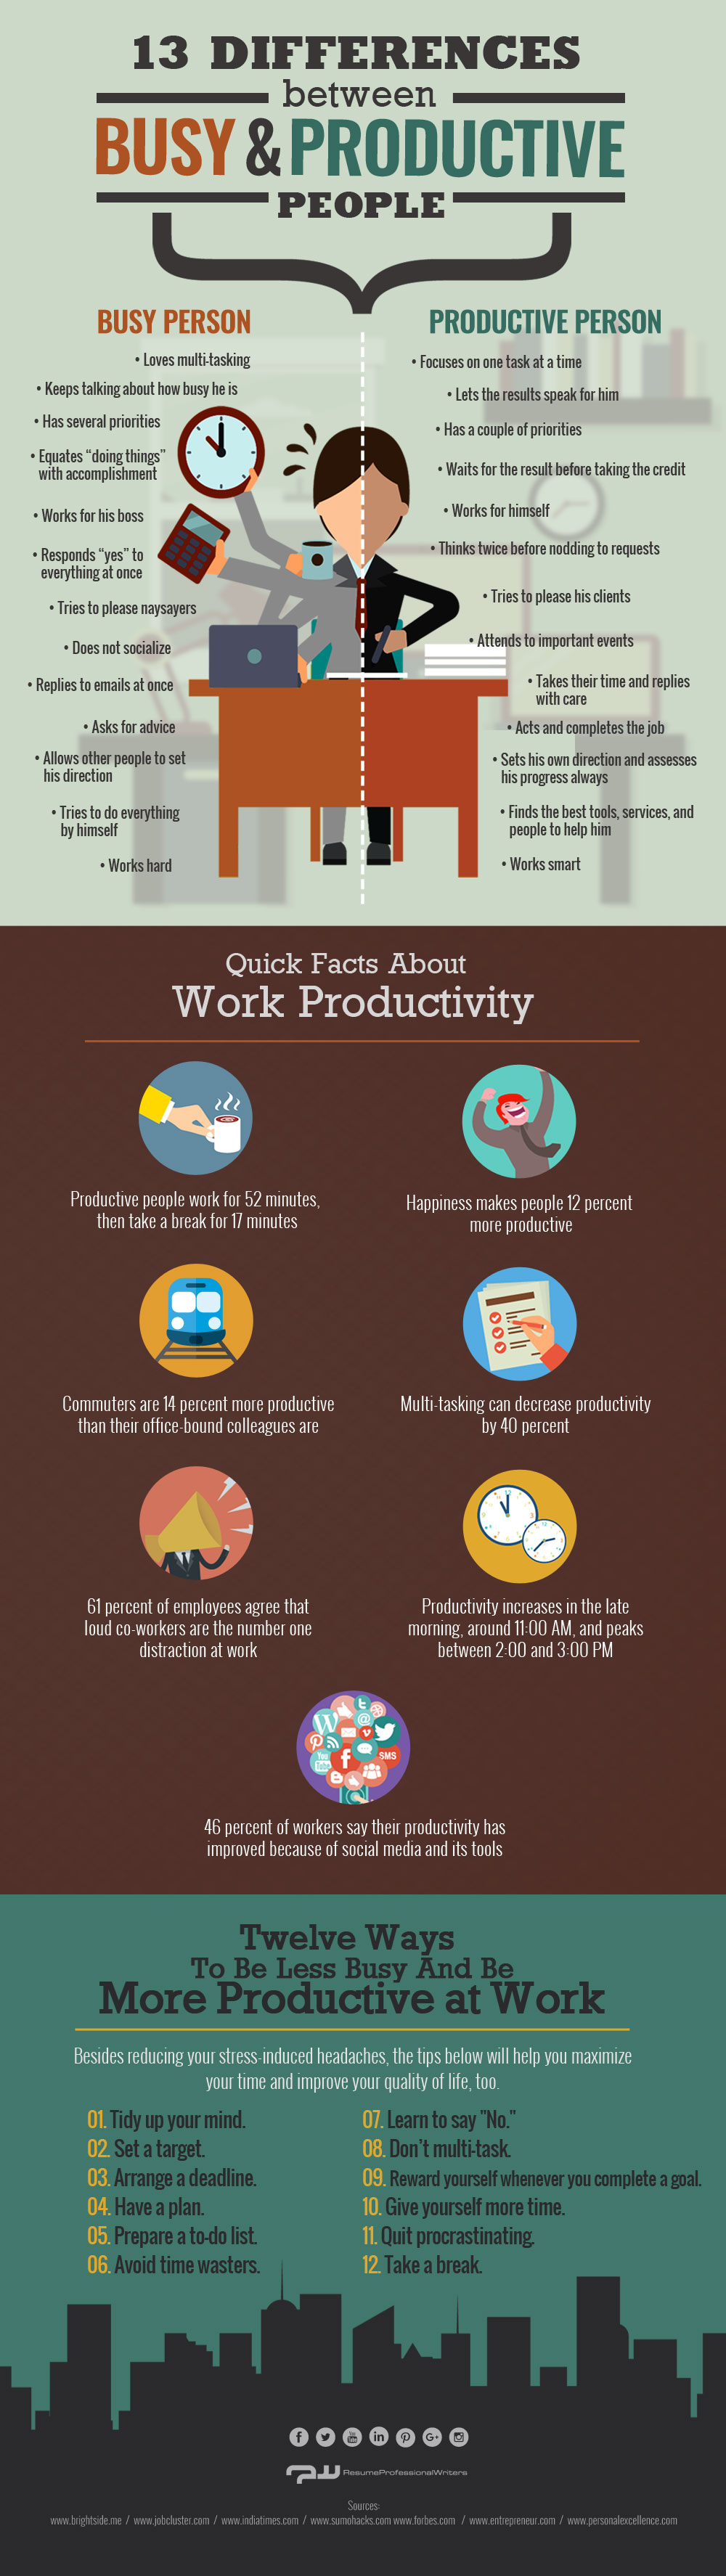 Productive People vs. Busy Ones